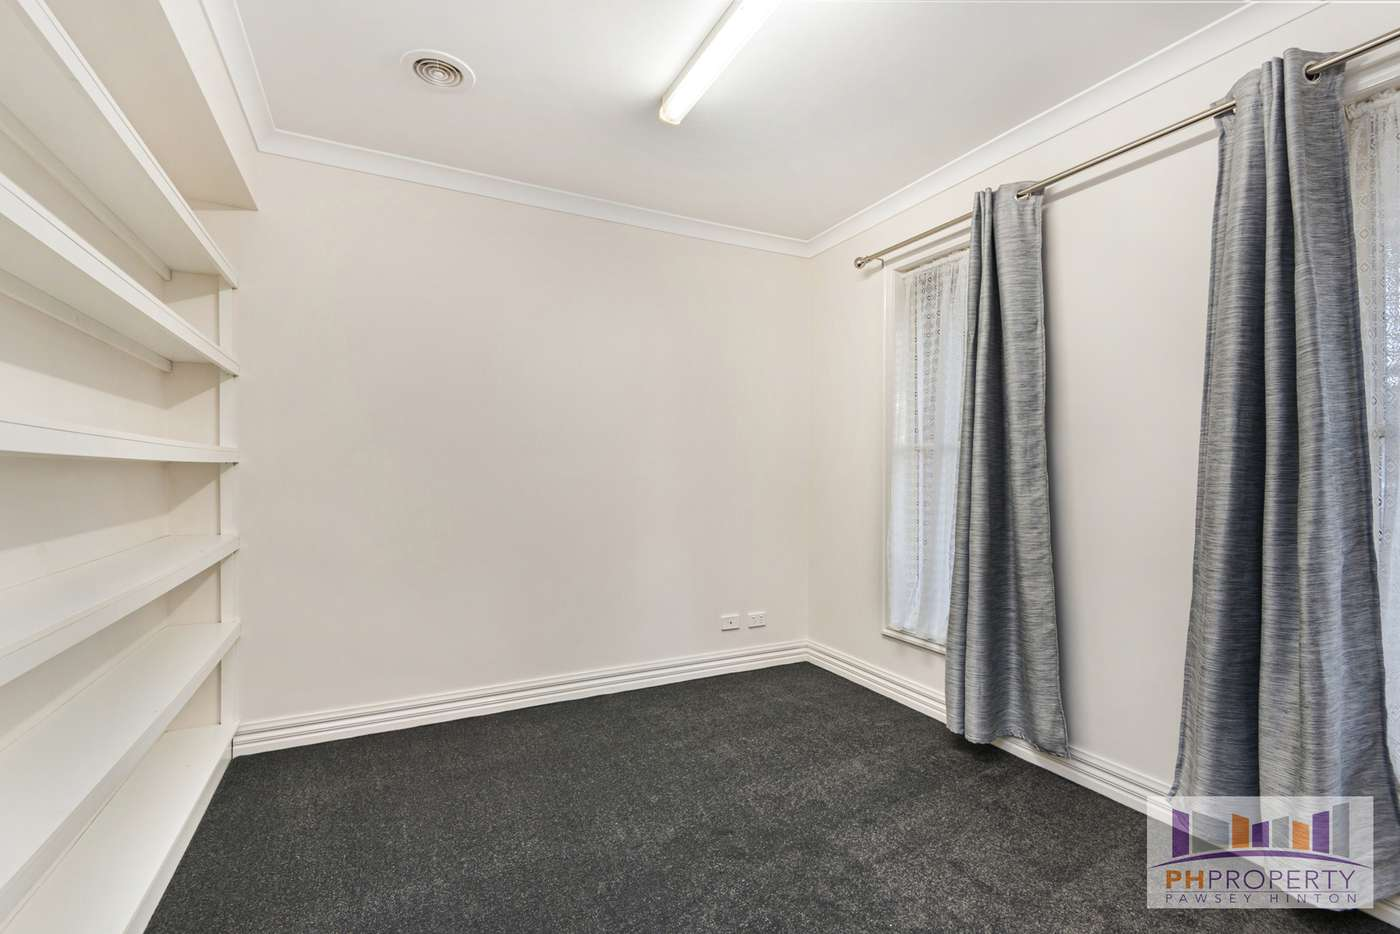 Sixth view of Homely house listing, 83 Monsants Road, Maiden Gully VIC 3551